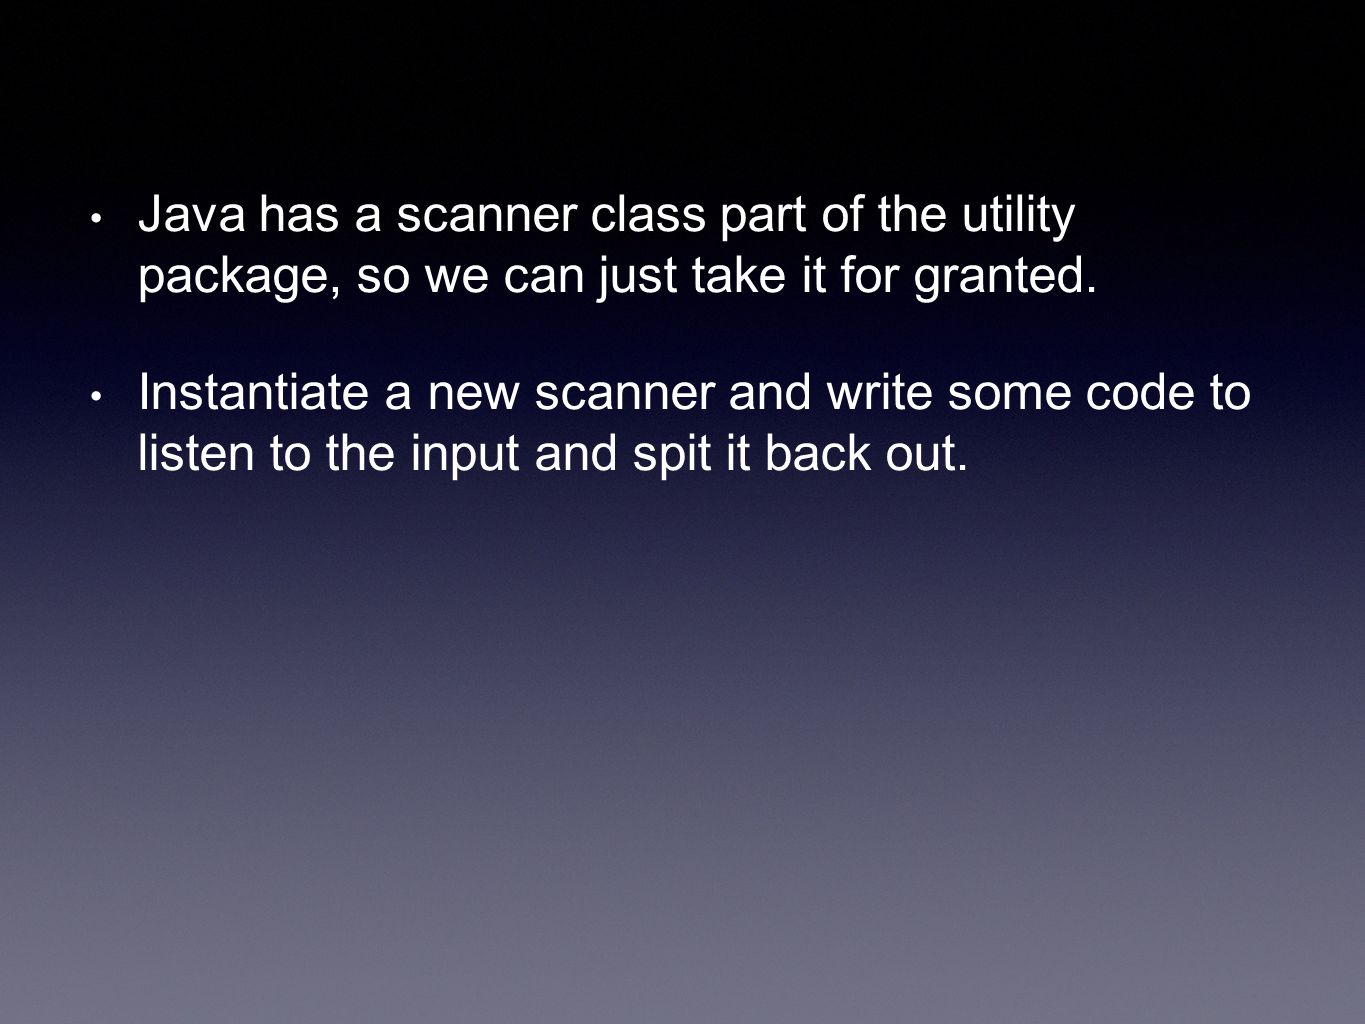 Java has a scanner class part of the utility package, so we can just take it for granted.